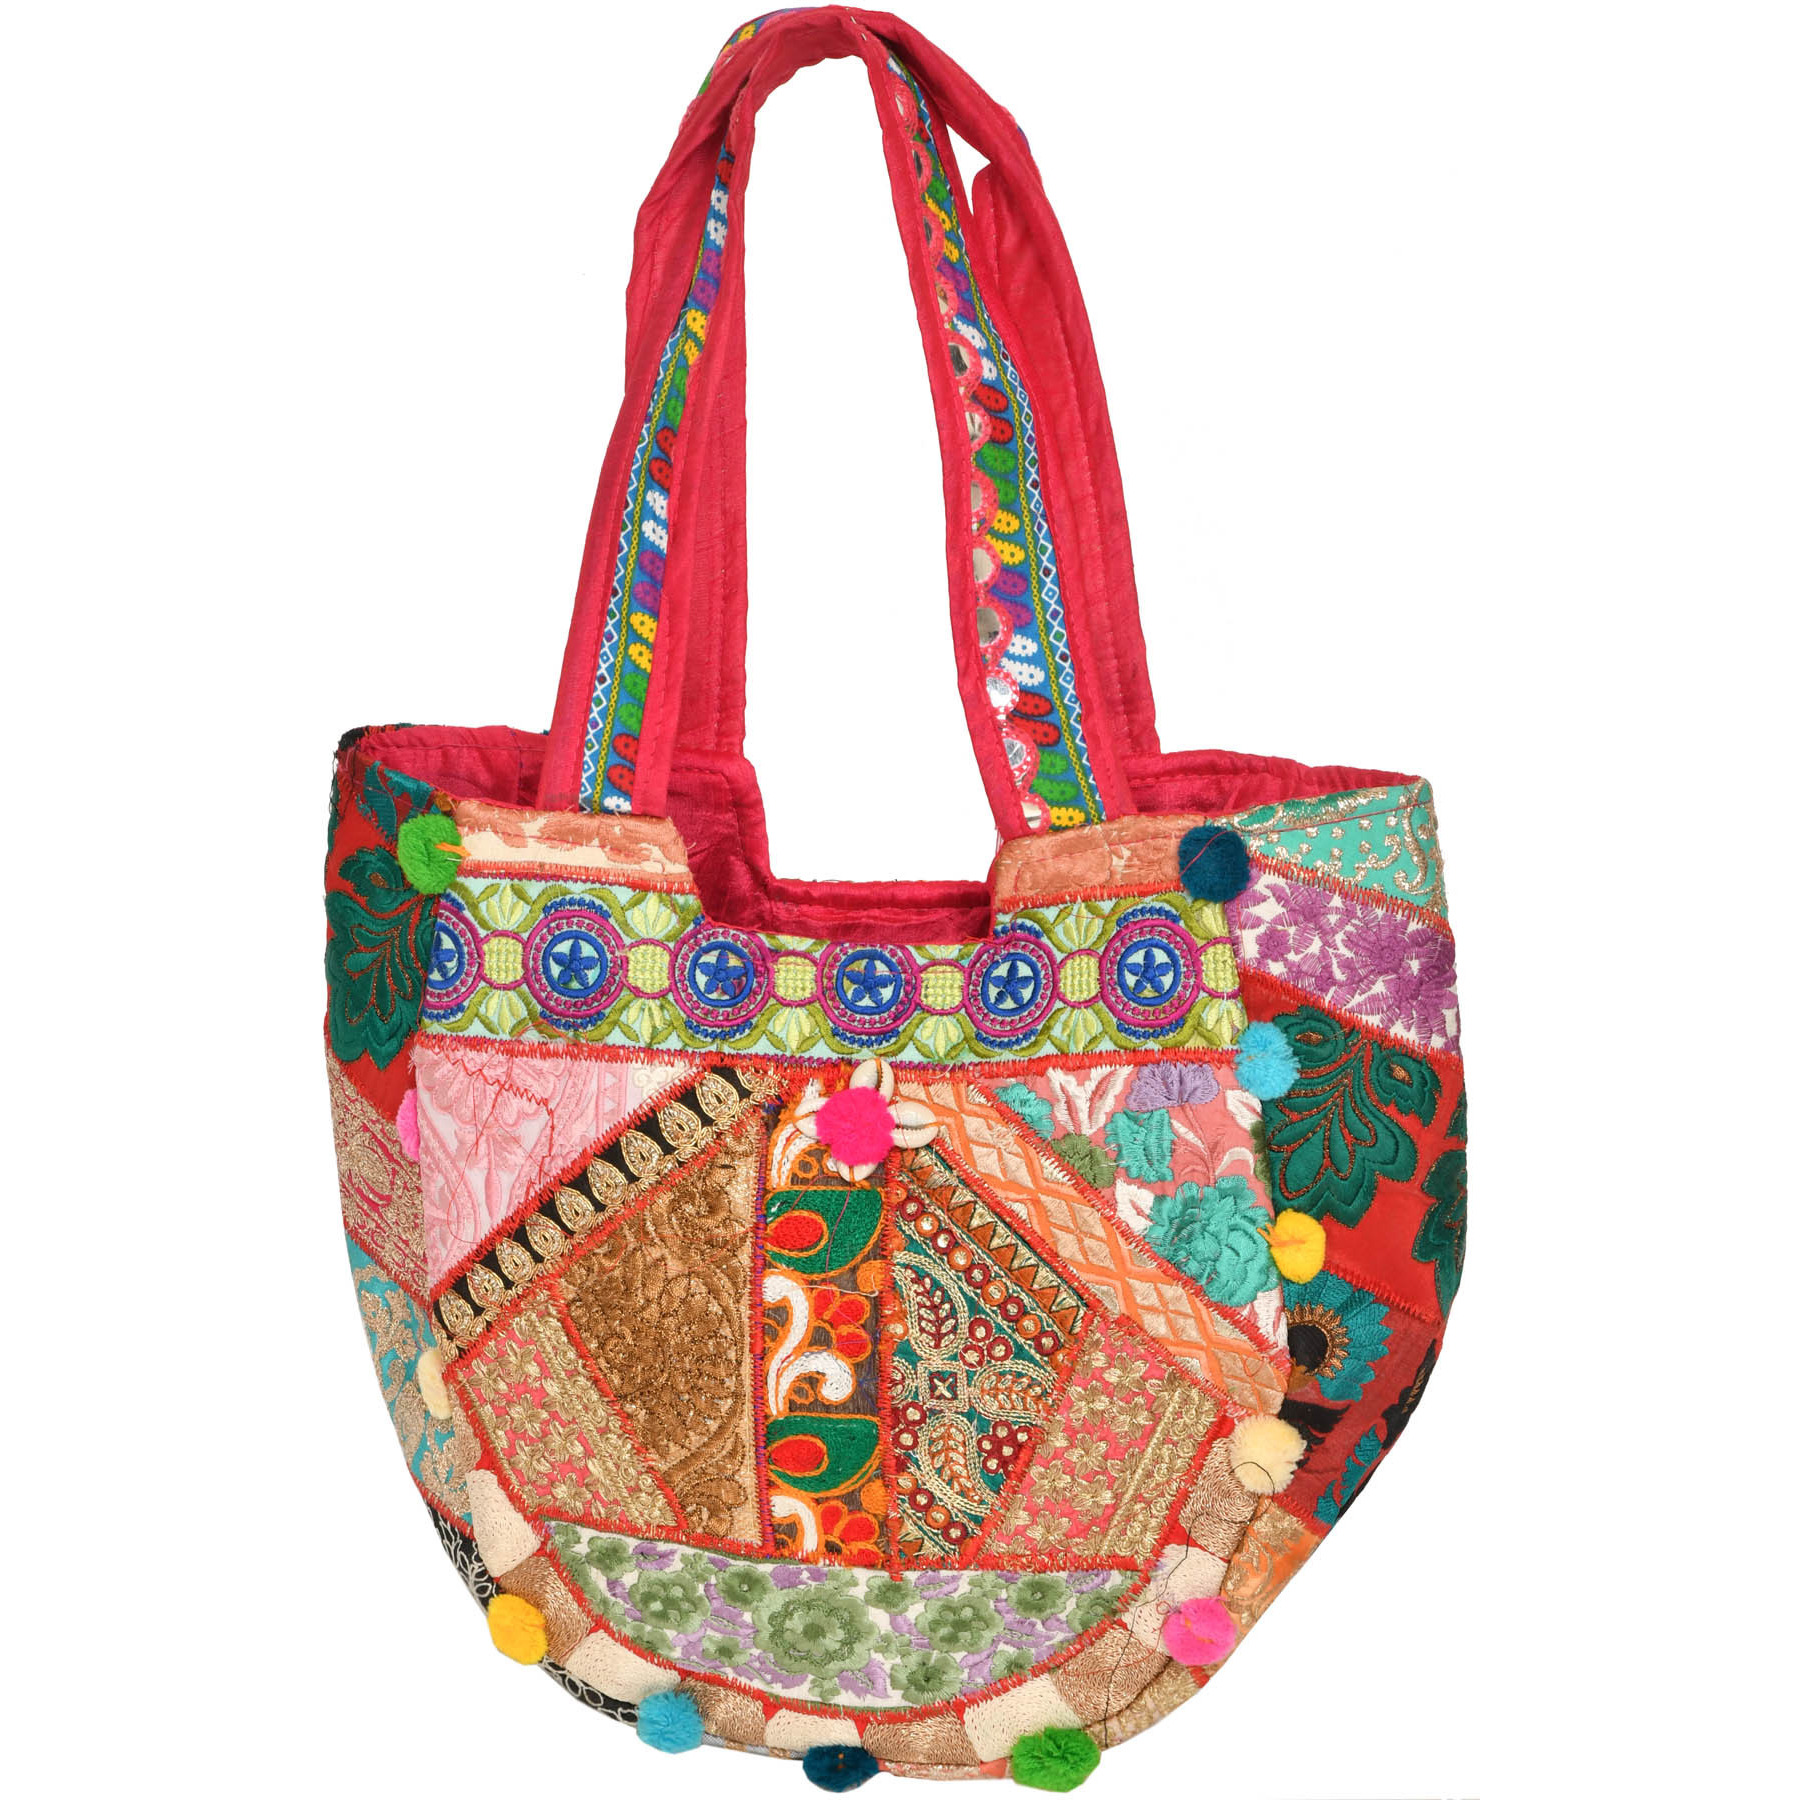 Multicolor Embroidered Shopper Bag with Cowries and Sequins